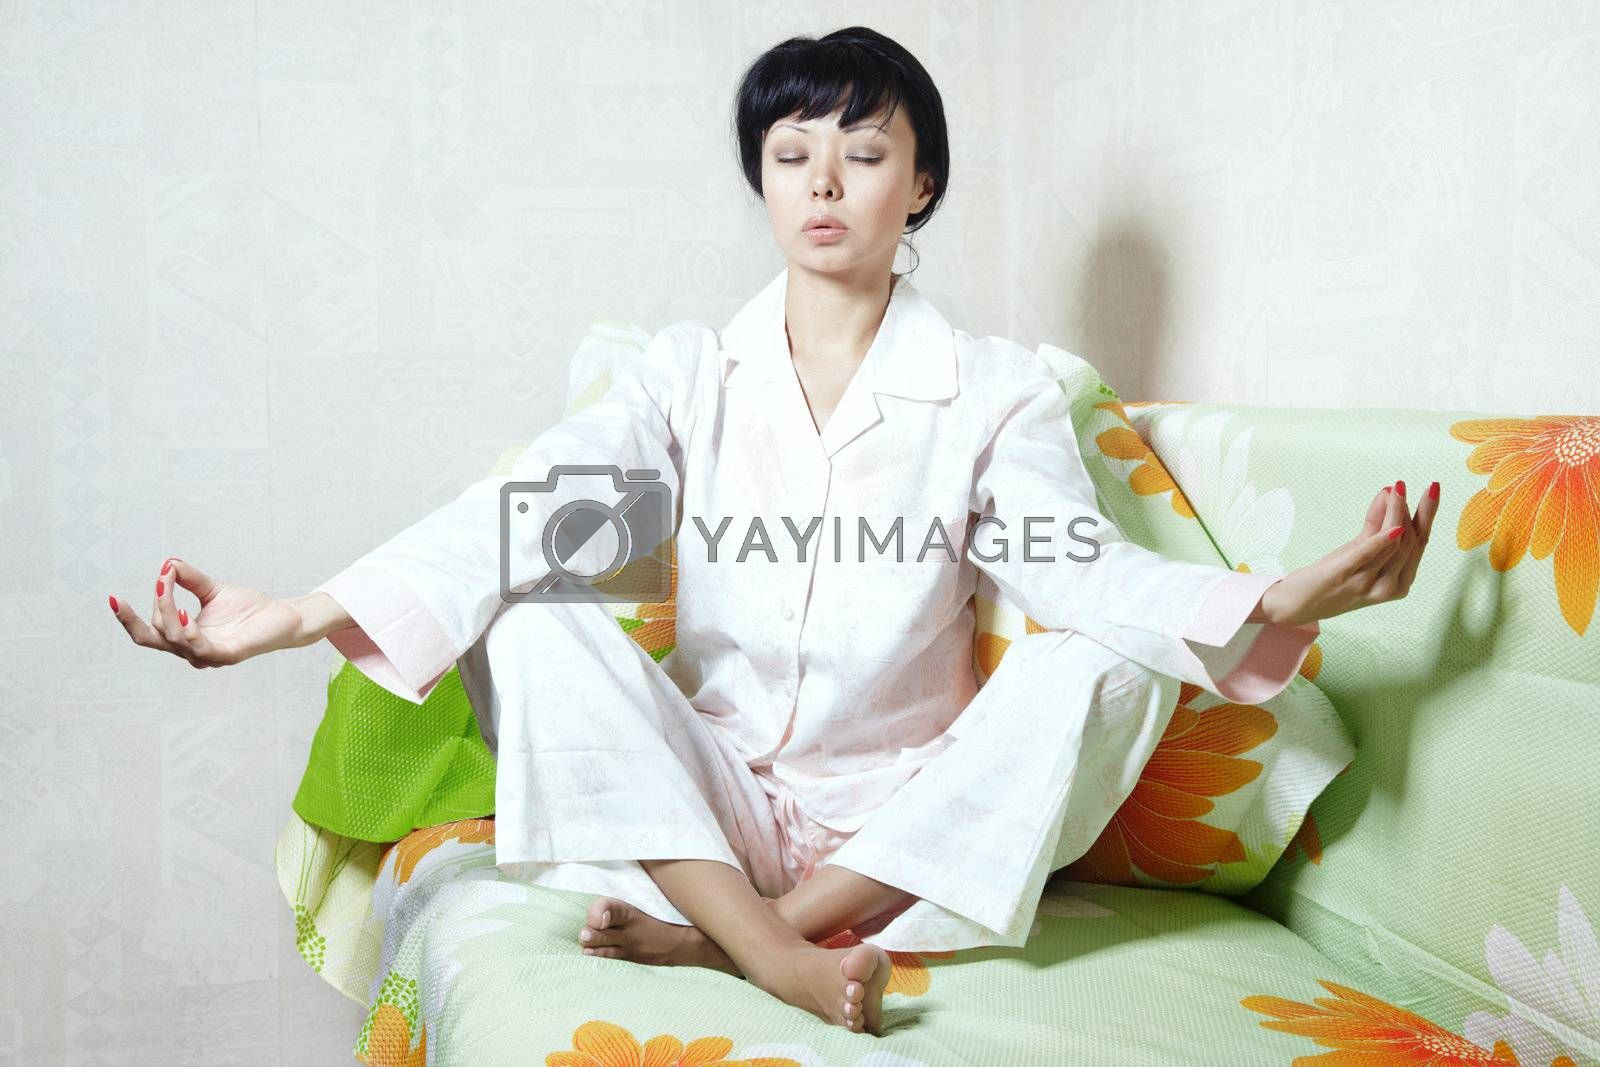 Lady sitting on the bed and doing yoga meditation